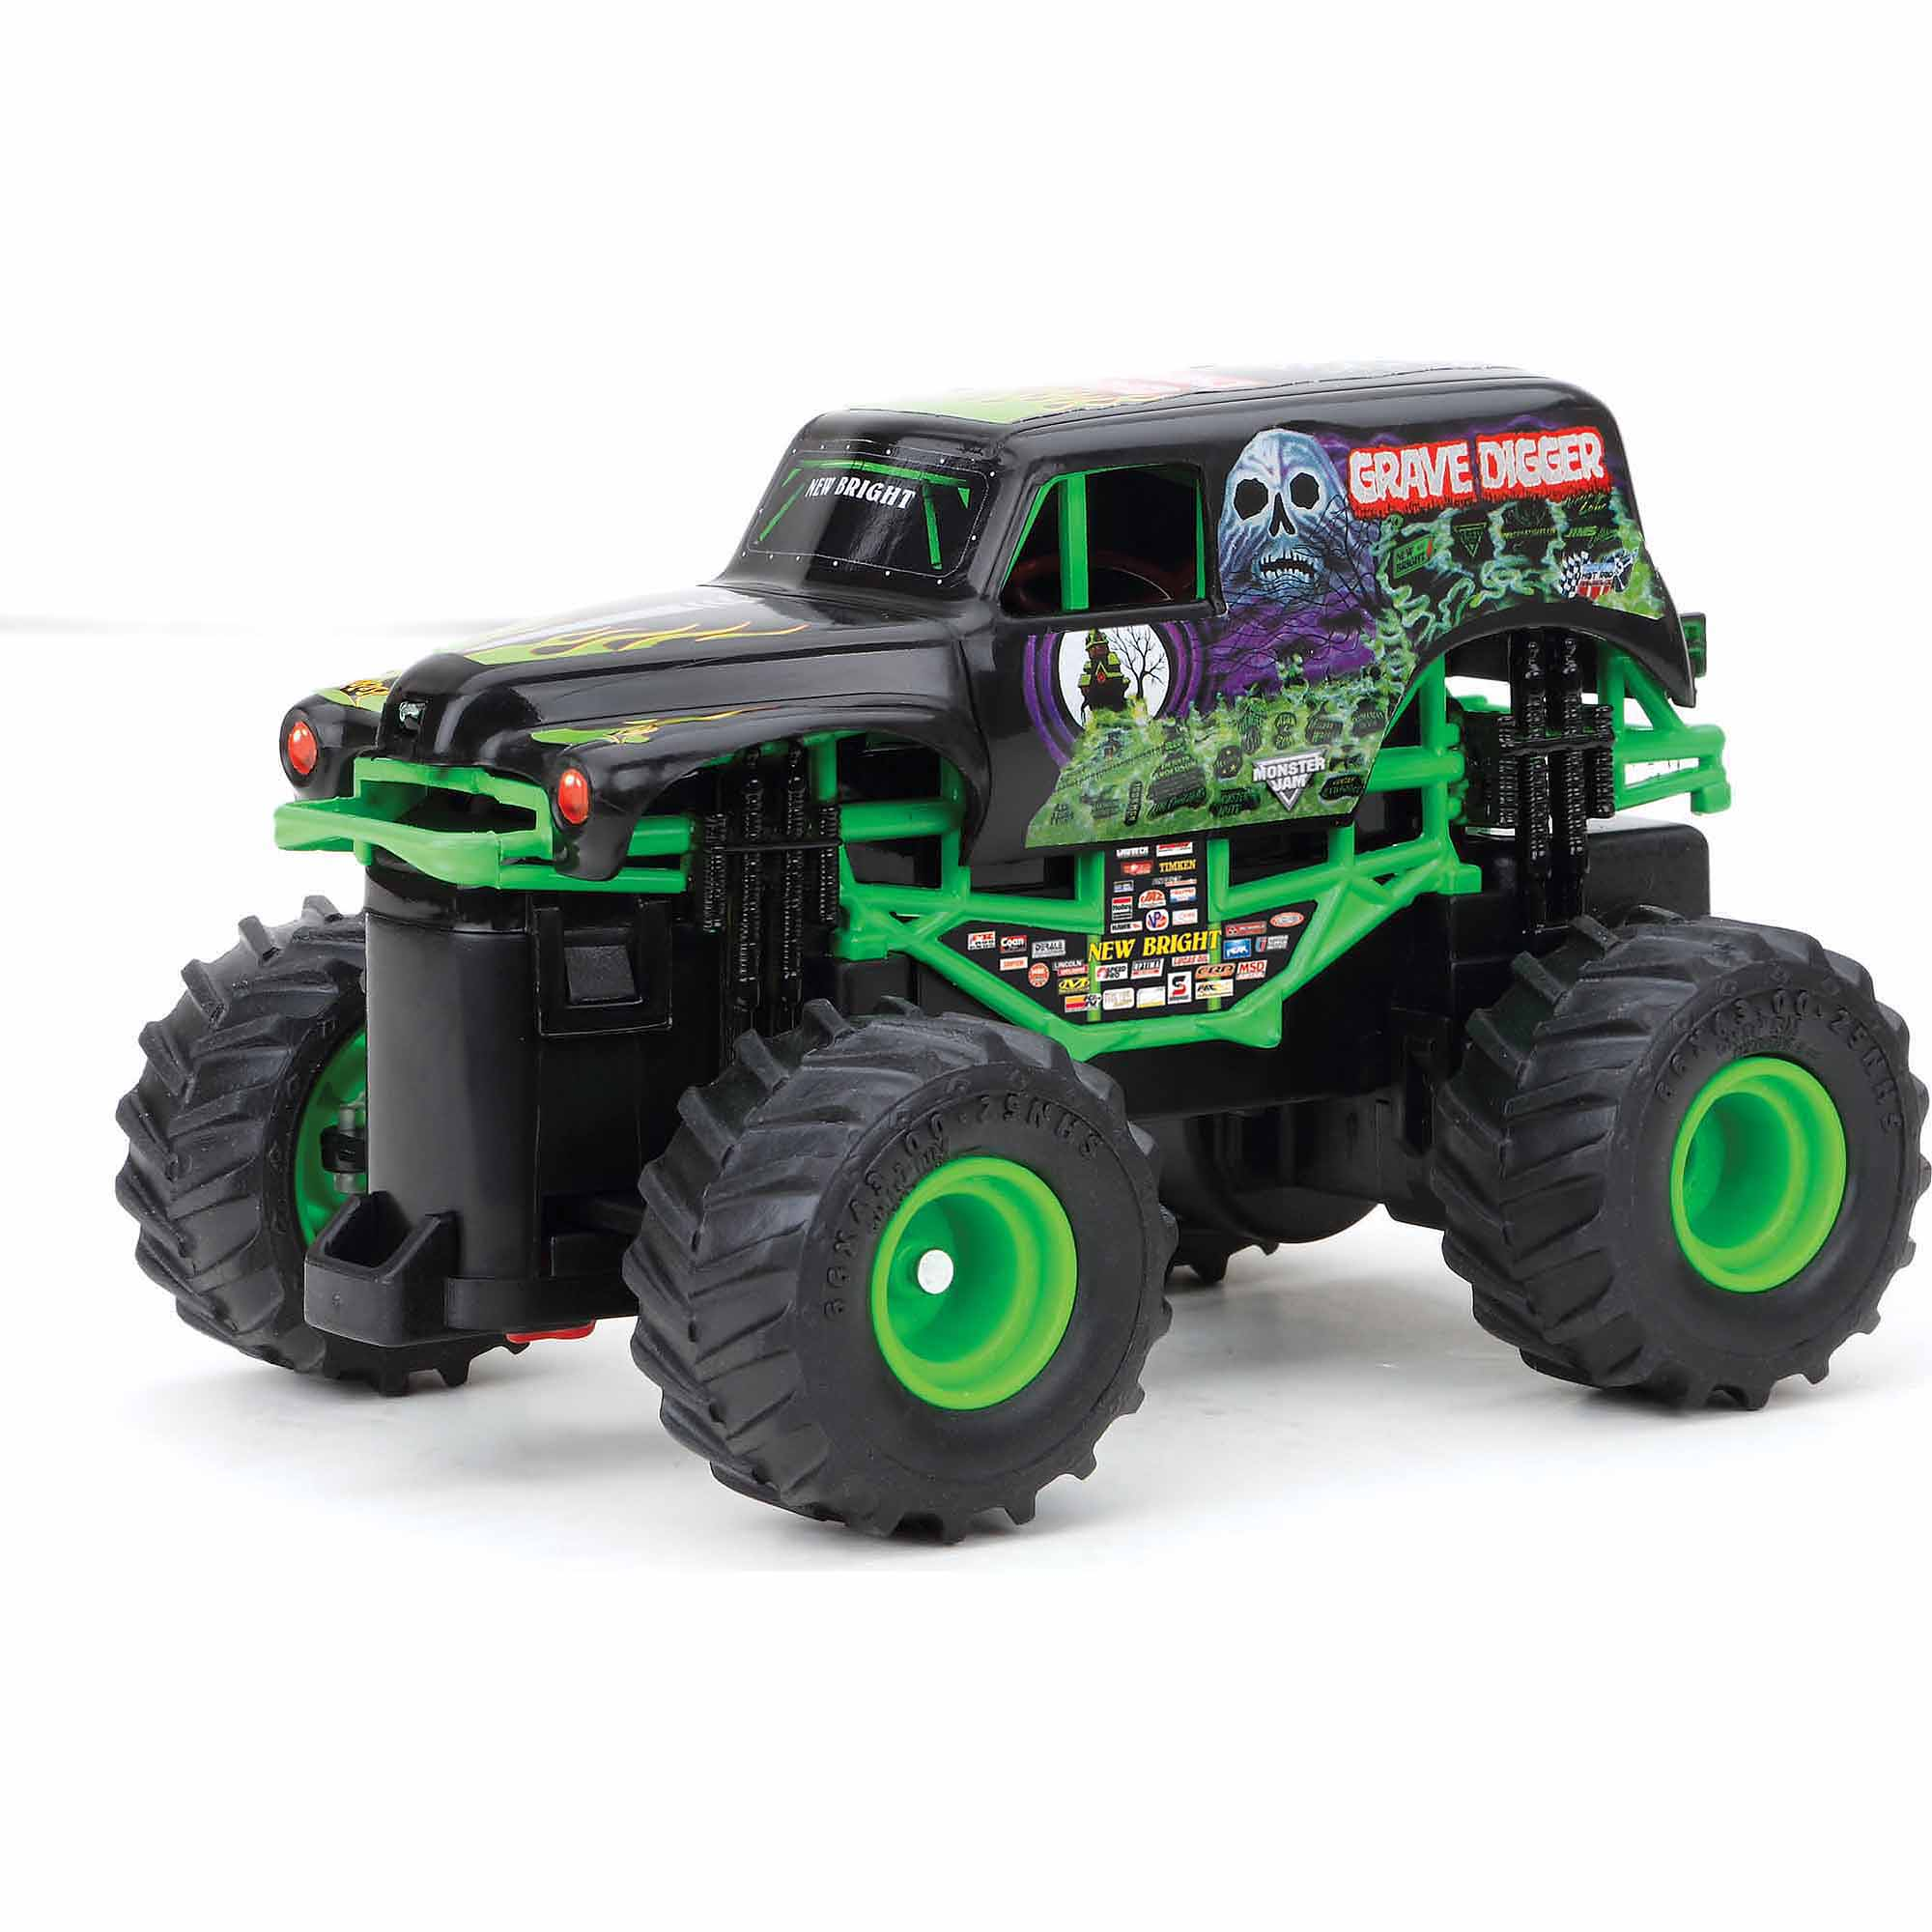 New Bright 1:43 Radio Control Full-Function Monster Jam Grave Digger, Black